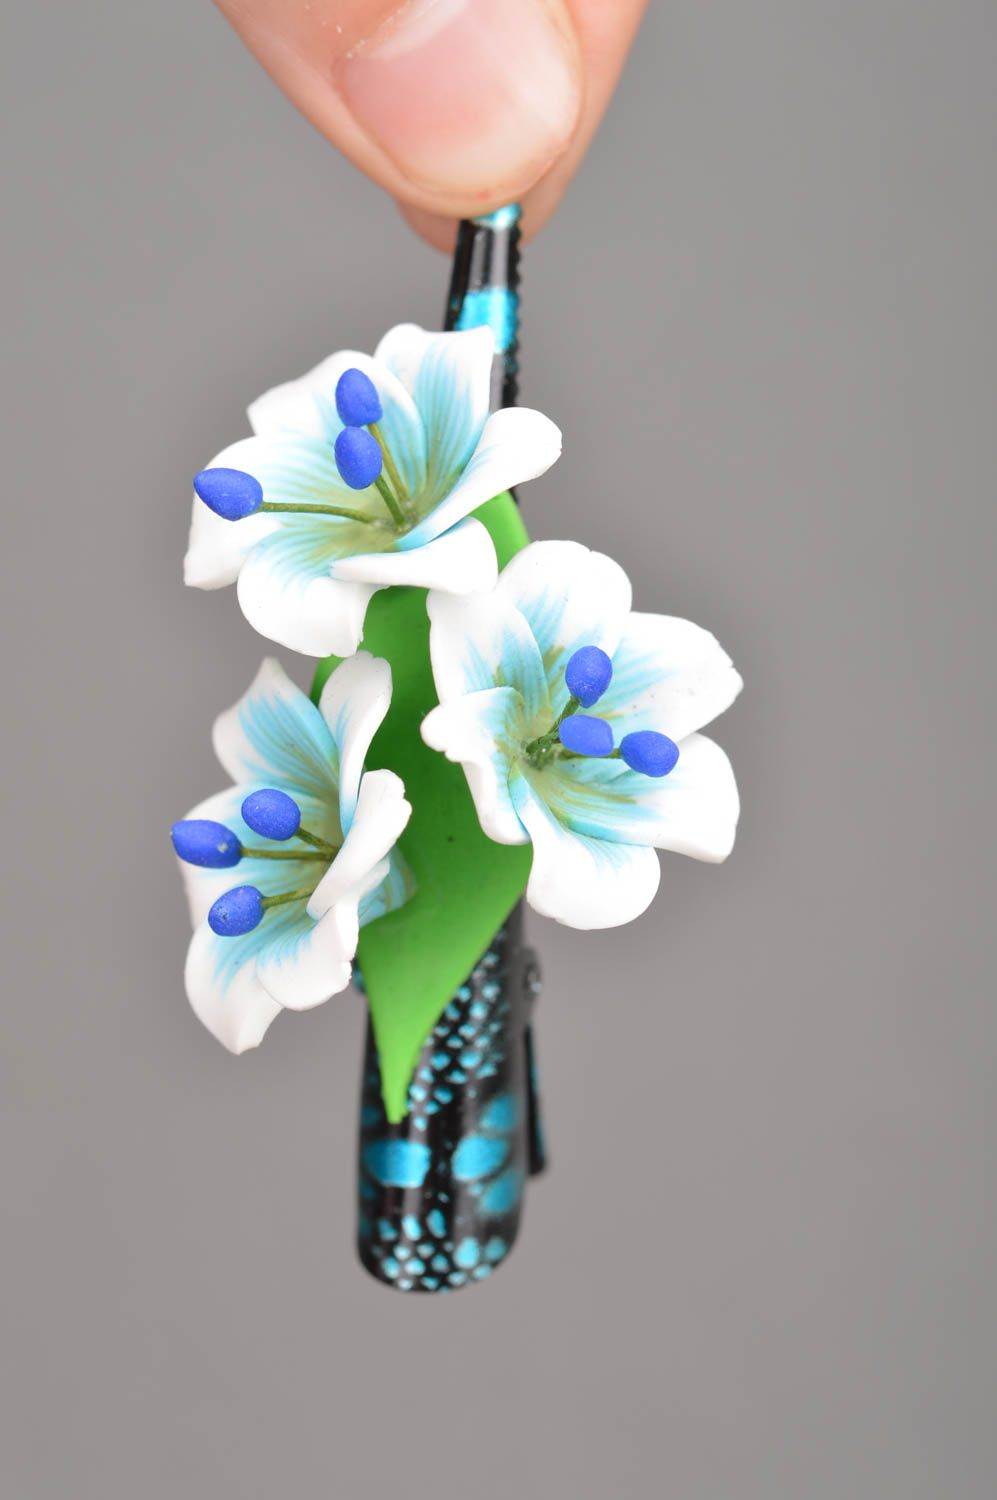 hair clips Handmade designer metal hair clip with 3 polymer clay white and blue flowers - MADEheart.com